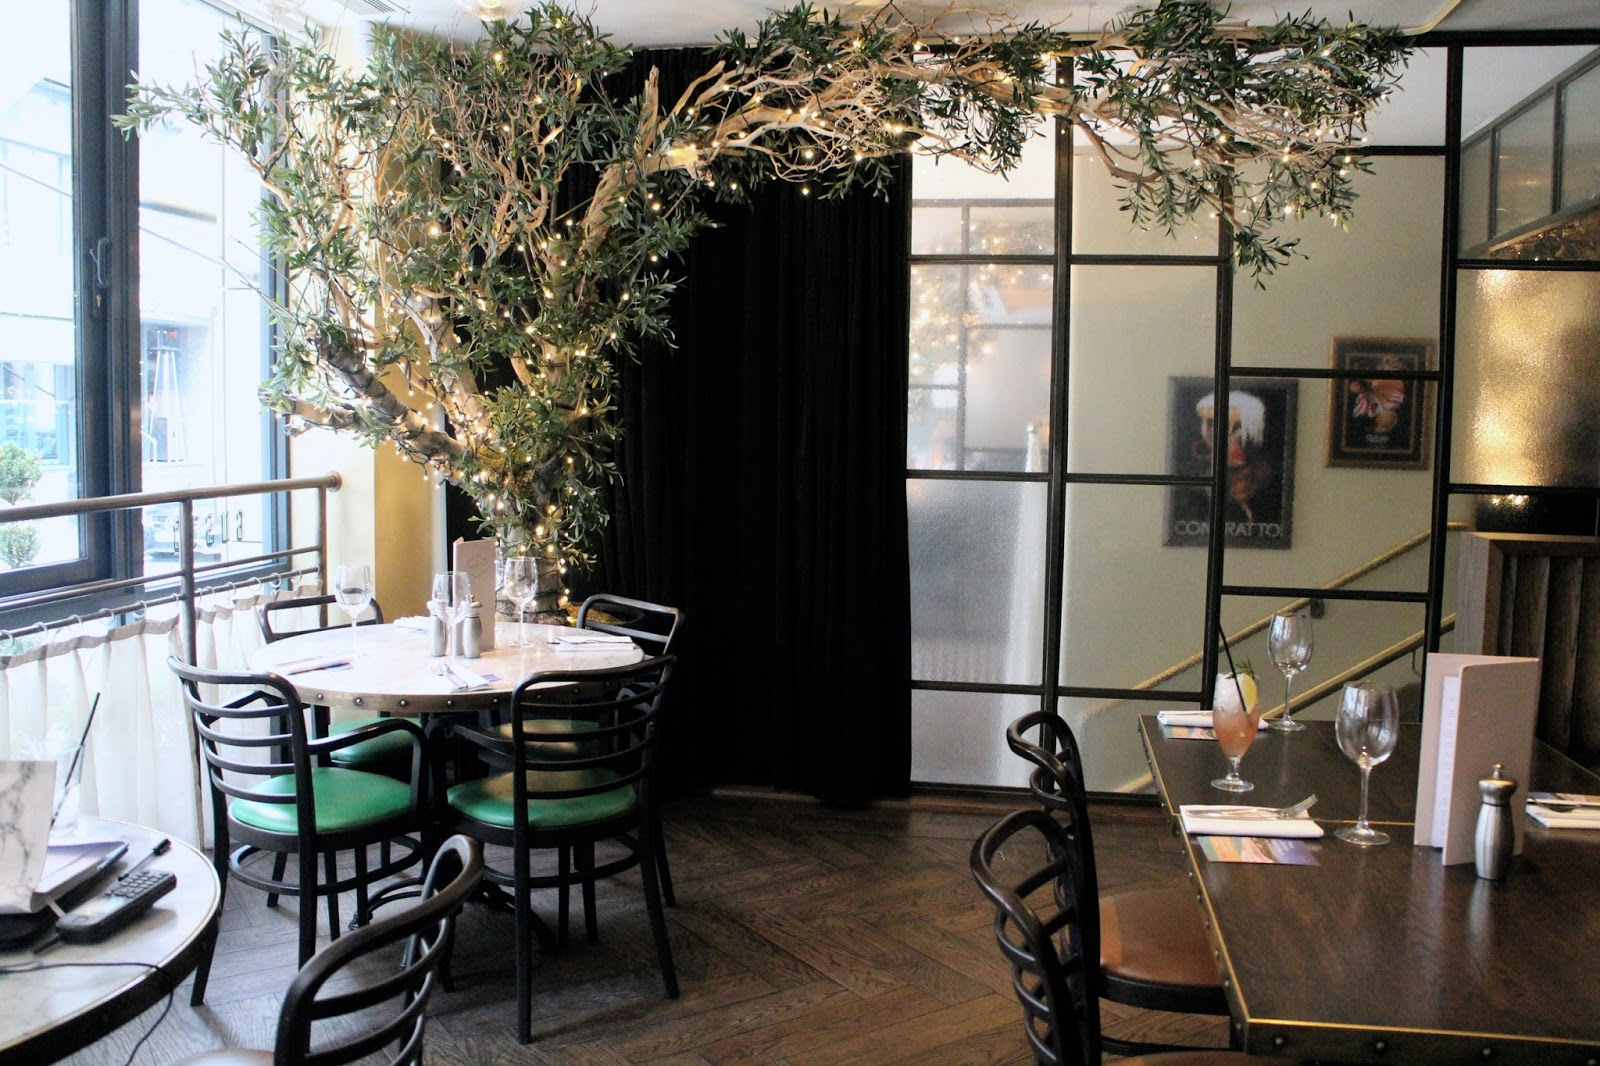 Foliage and fairy lights decor at Gusto Restaurants | The Dress Diaries